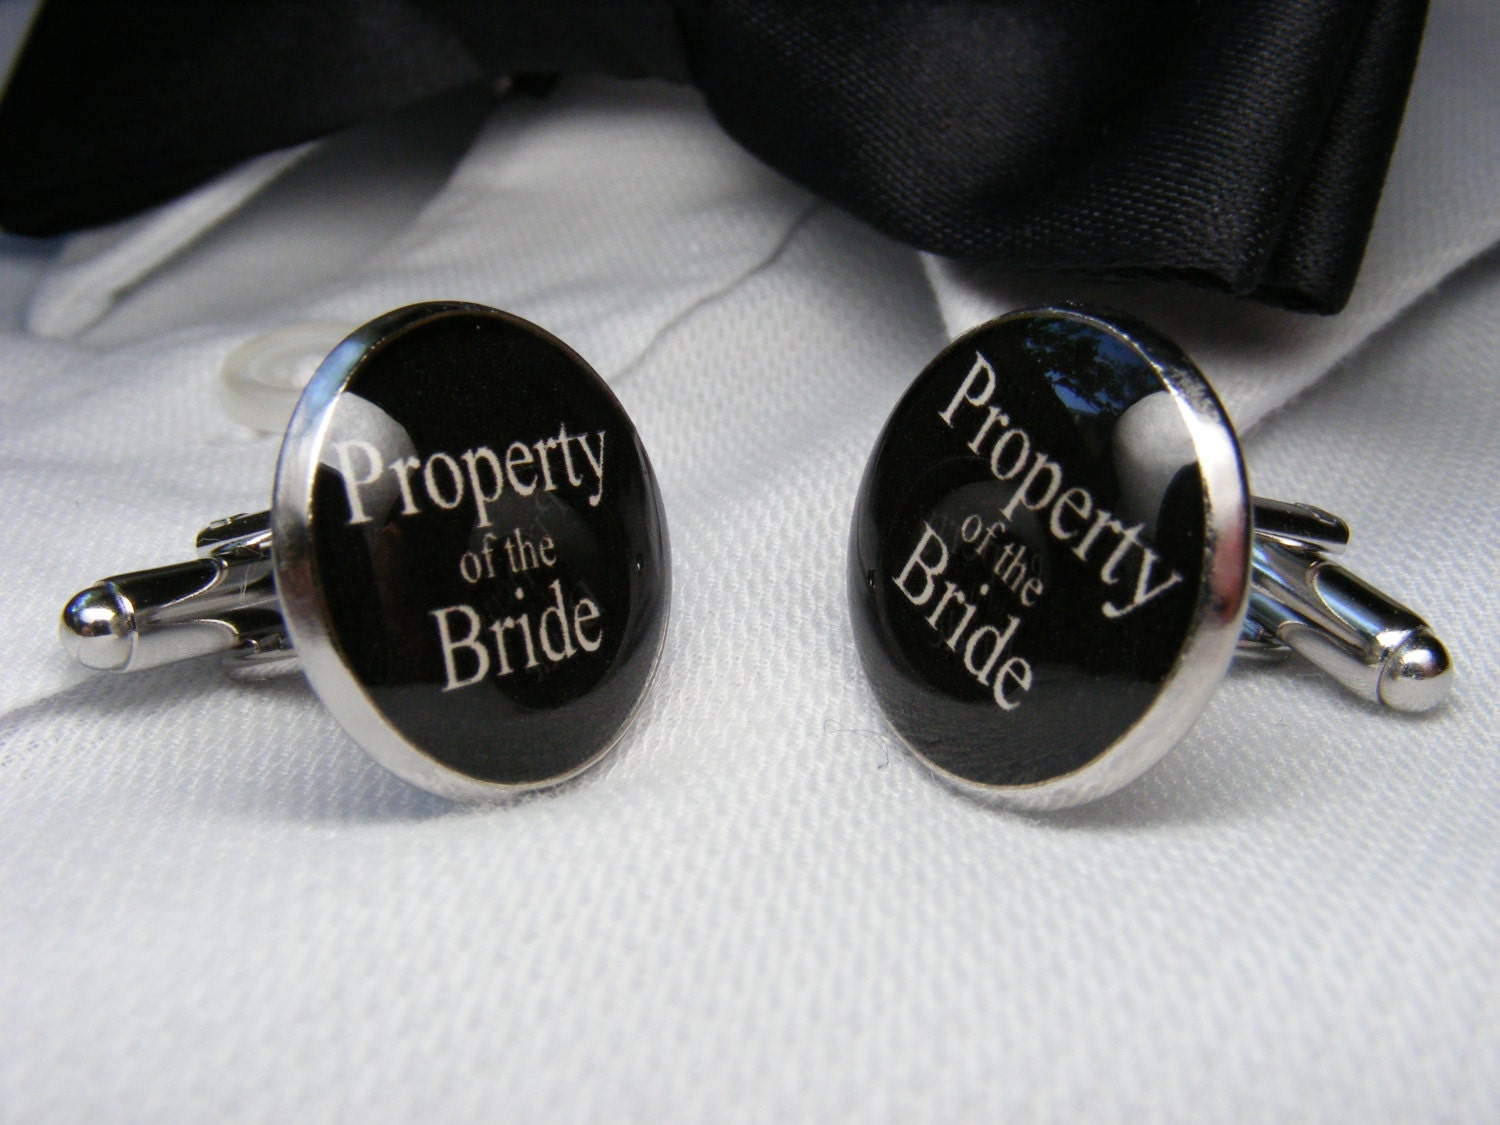 Property of the Bride Cufflinks - Grooms Corner Wedding Cufflinks ...